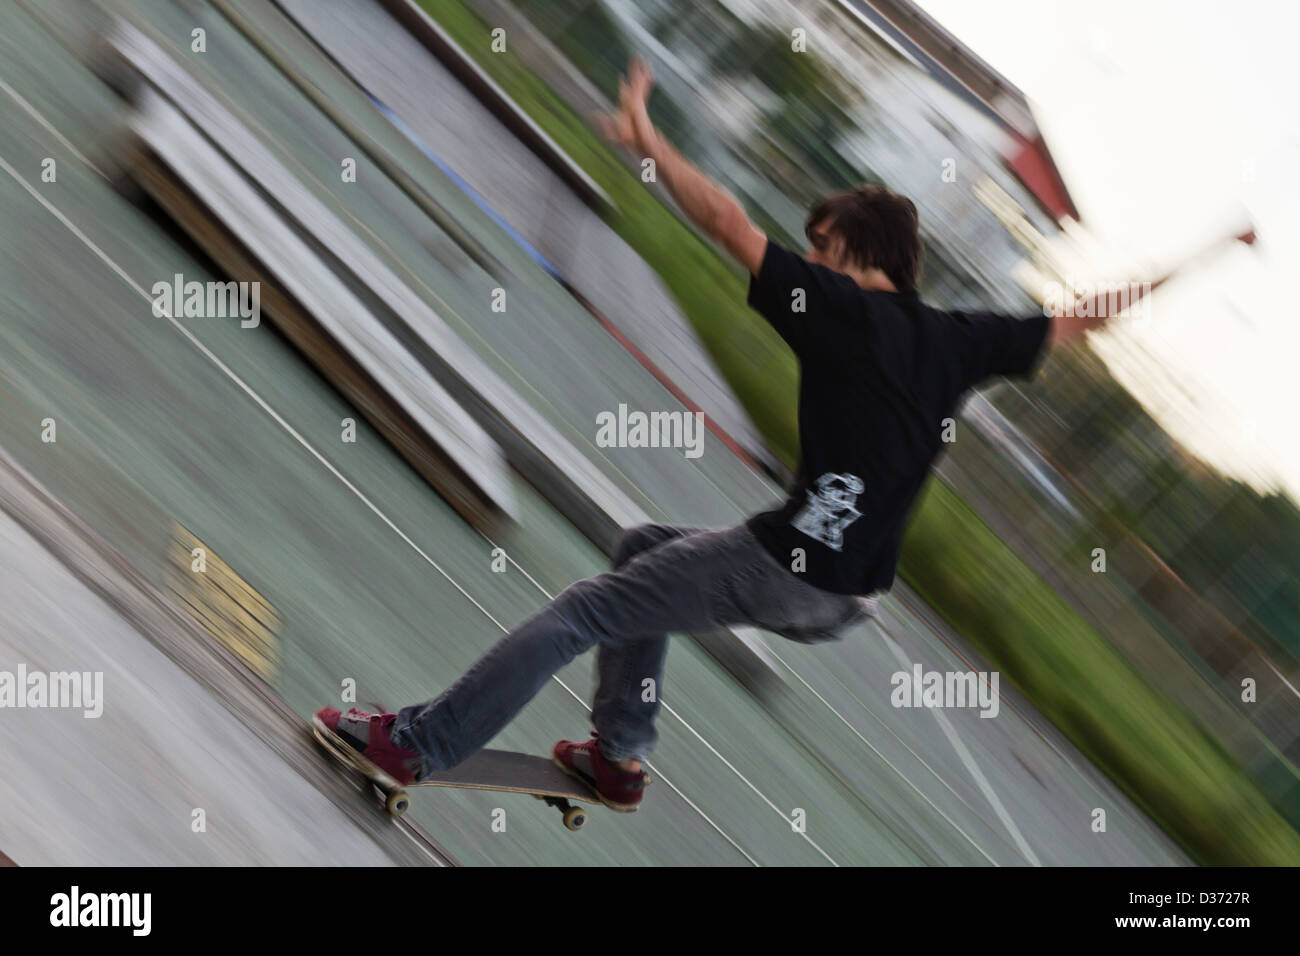 skateboarder with red shoes dose trick with blurred background and diagonal composition East London South Africa - Stock Image